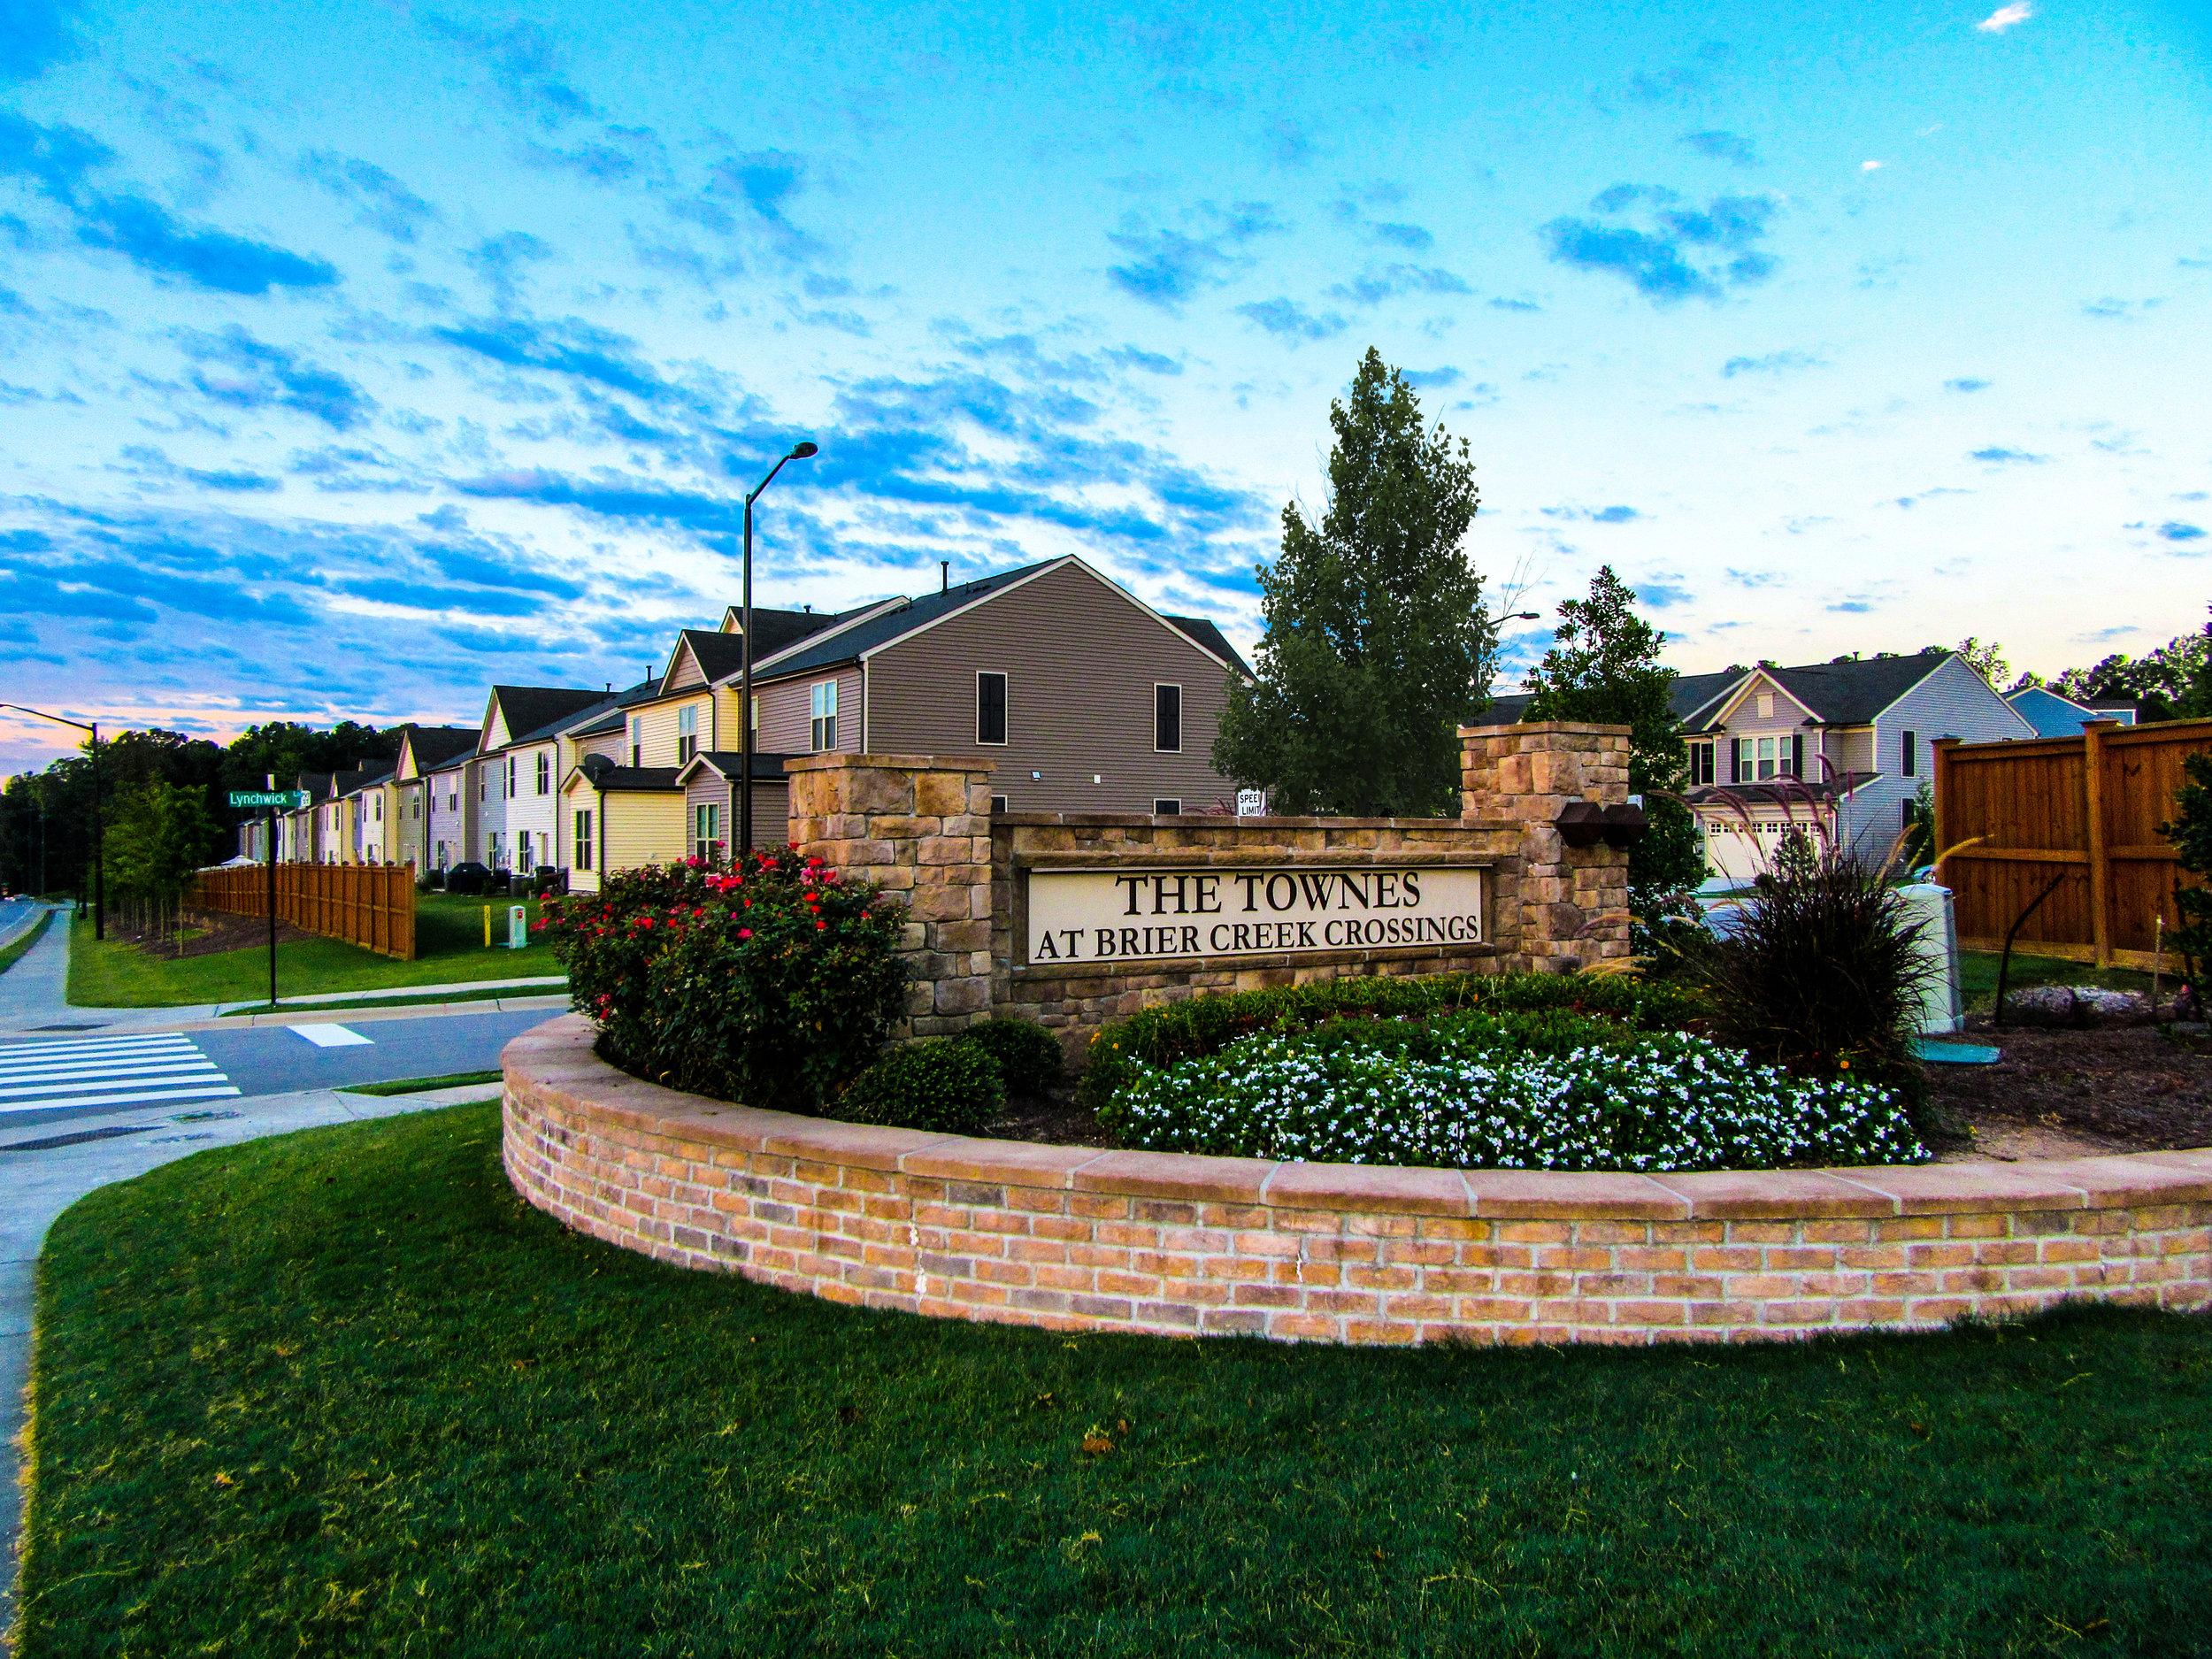 The Townes at Brier Creek Crossings - Landscape Architecture